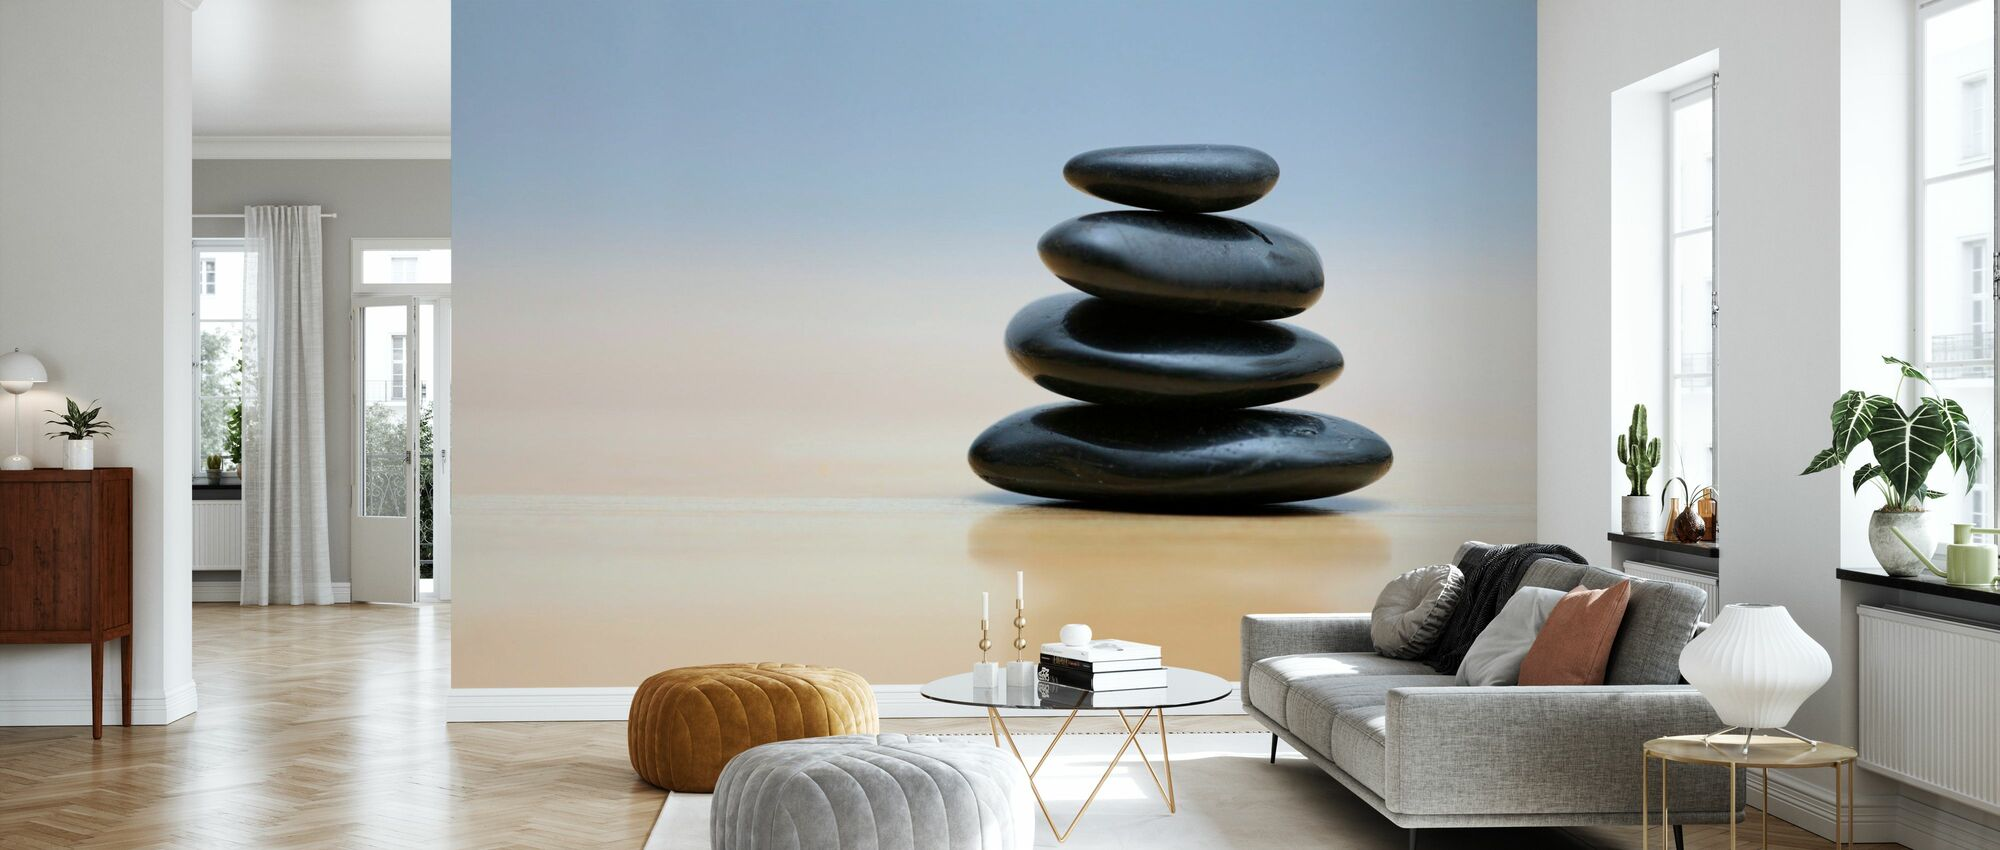 Zen Stones - Wallpaper - Living Room